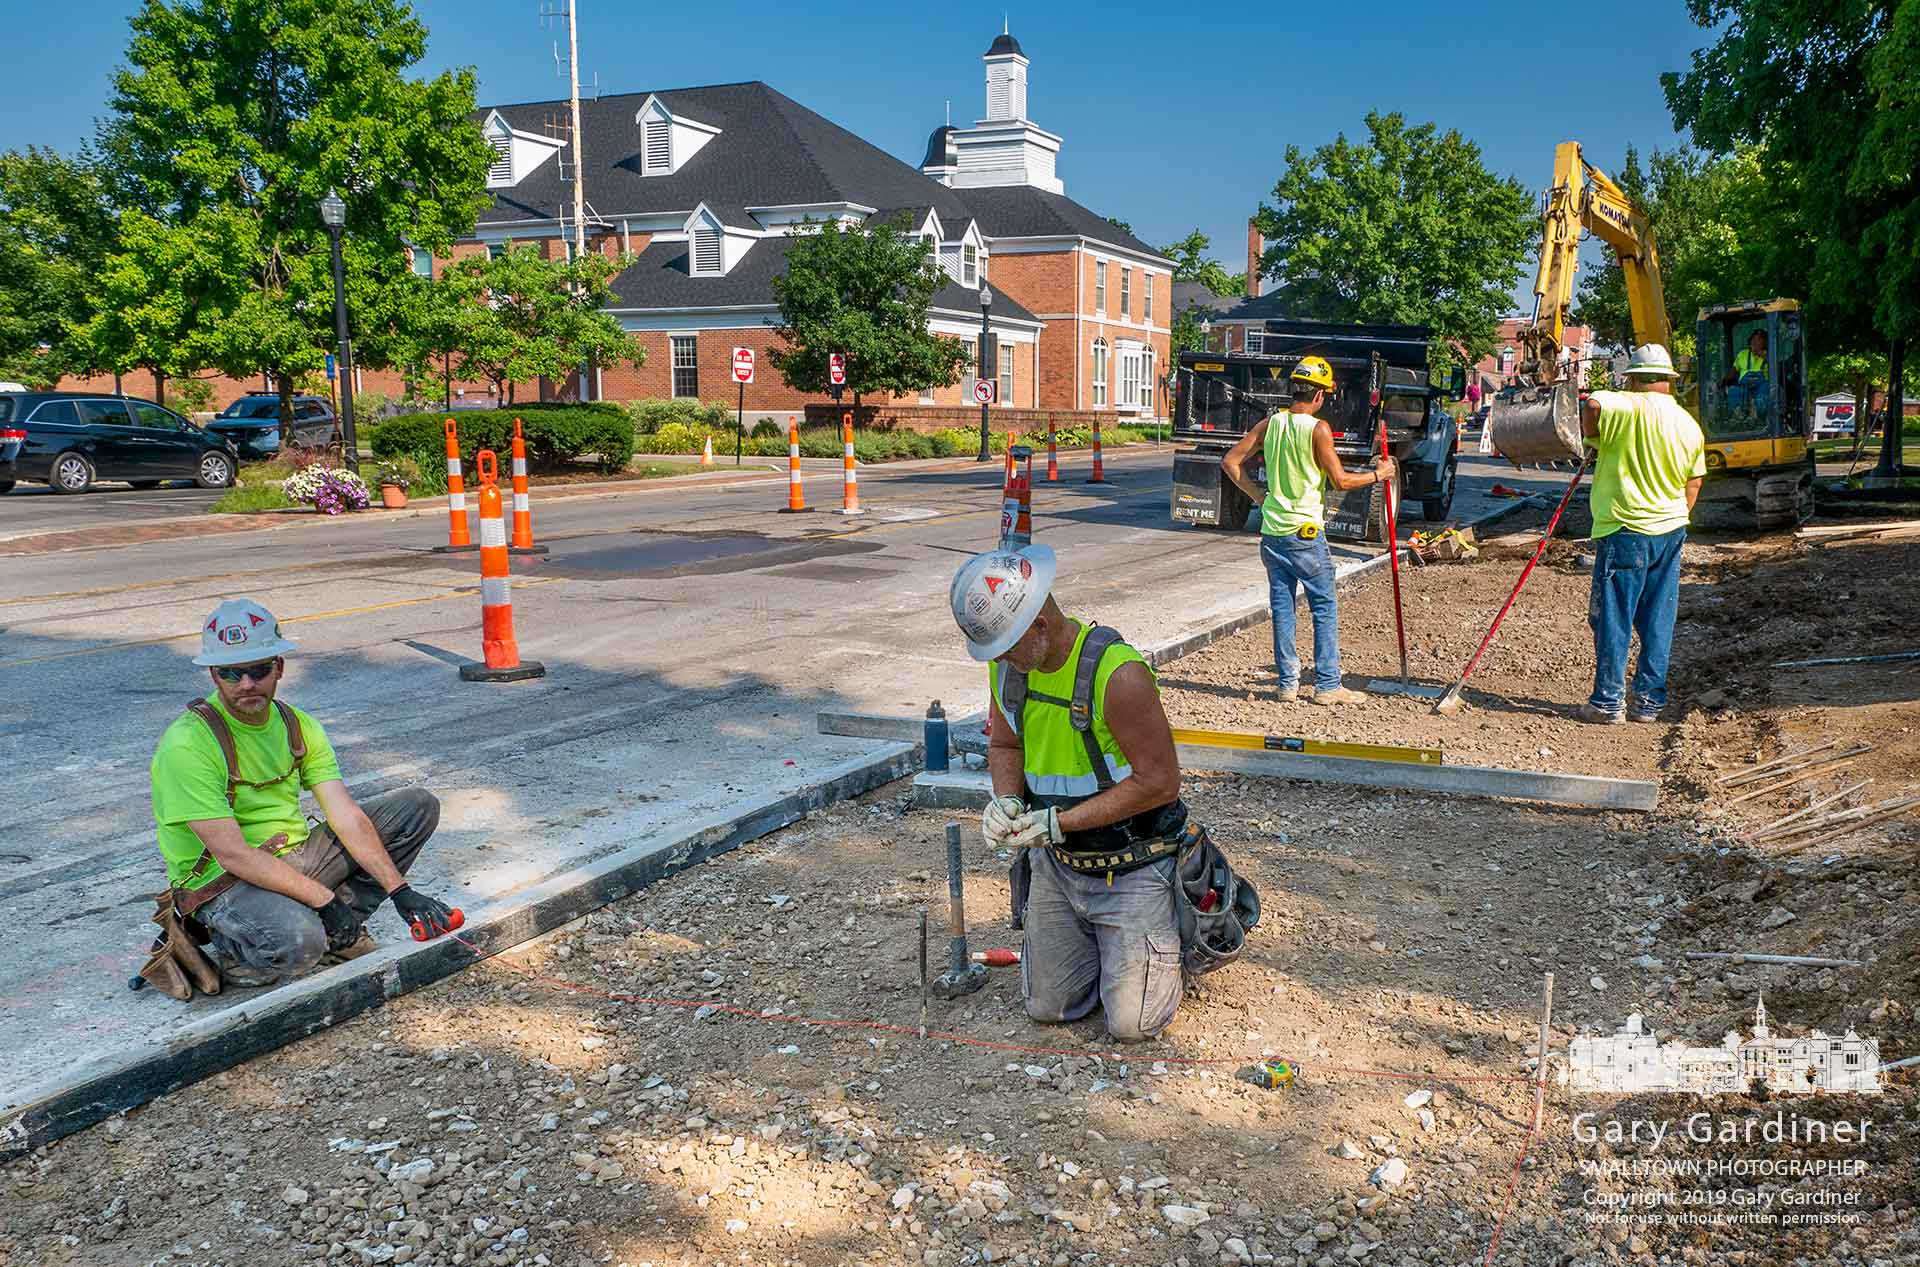 Workers remeasure elevations for the second pouring of the sidewalk in front of Hanby Elementary after the first pouring failed to meet ADA specification for the proper slope and had to be torn out. My Final Photo for Aug. 6, 2019.